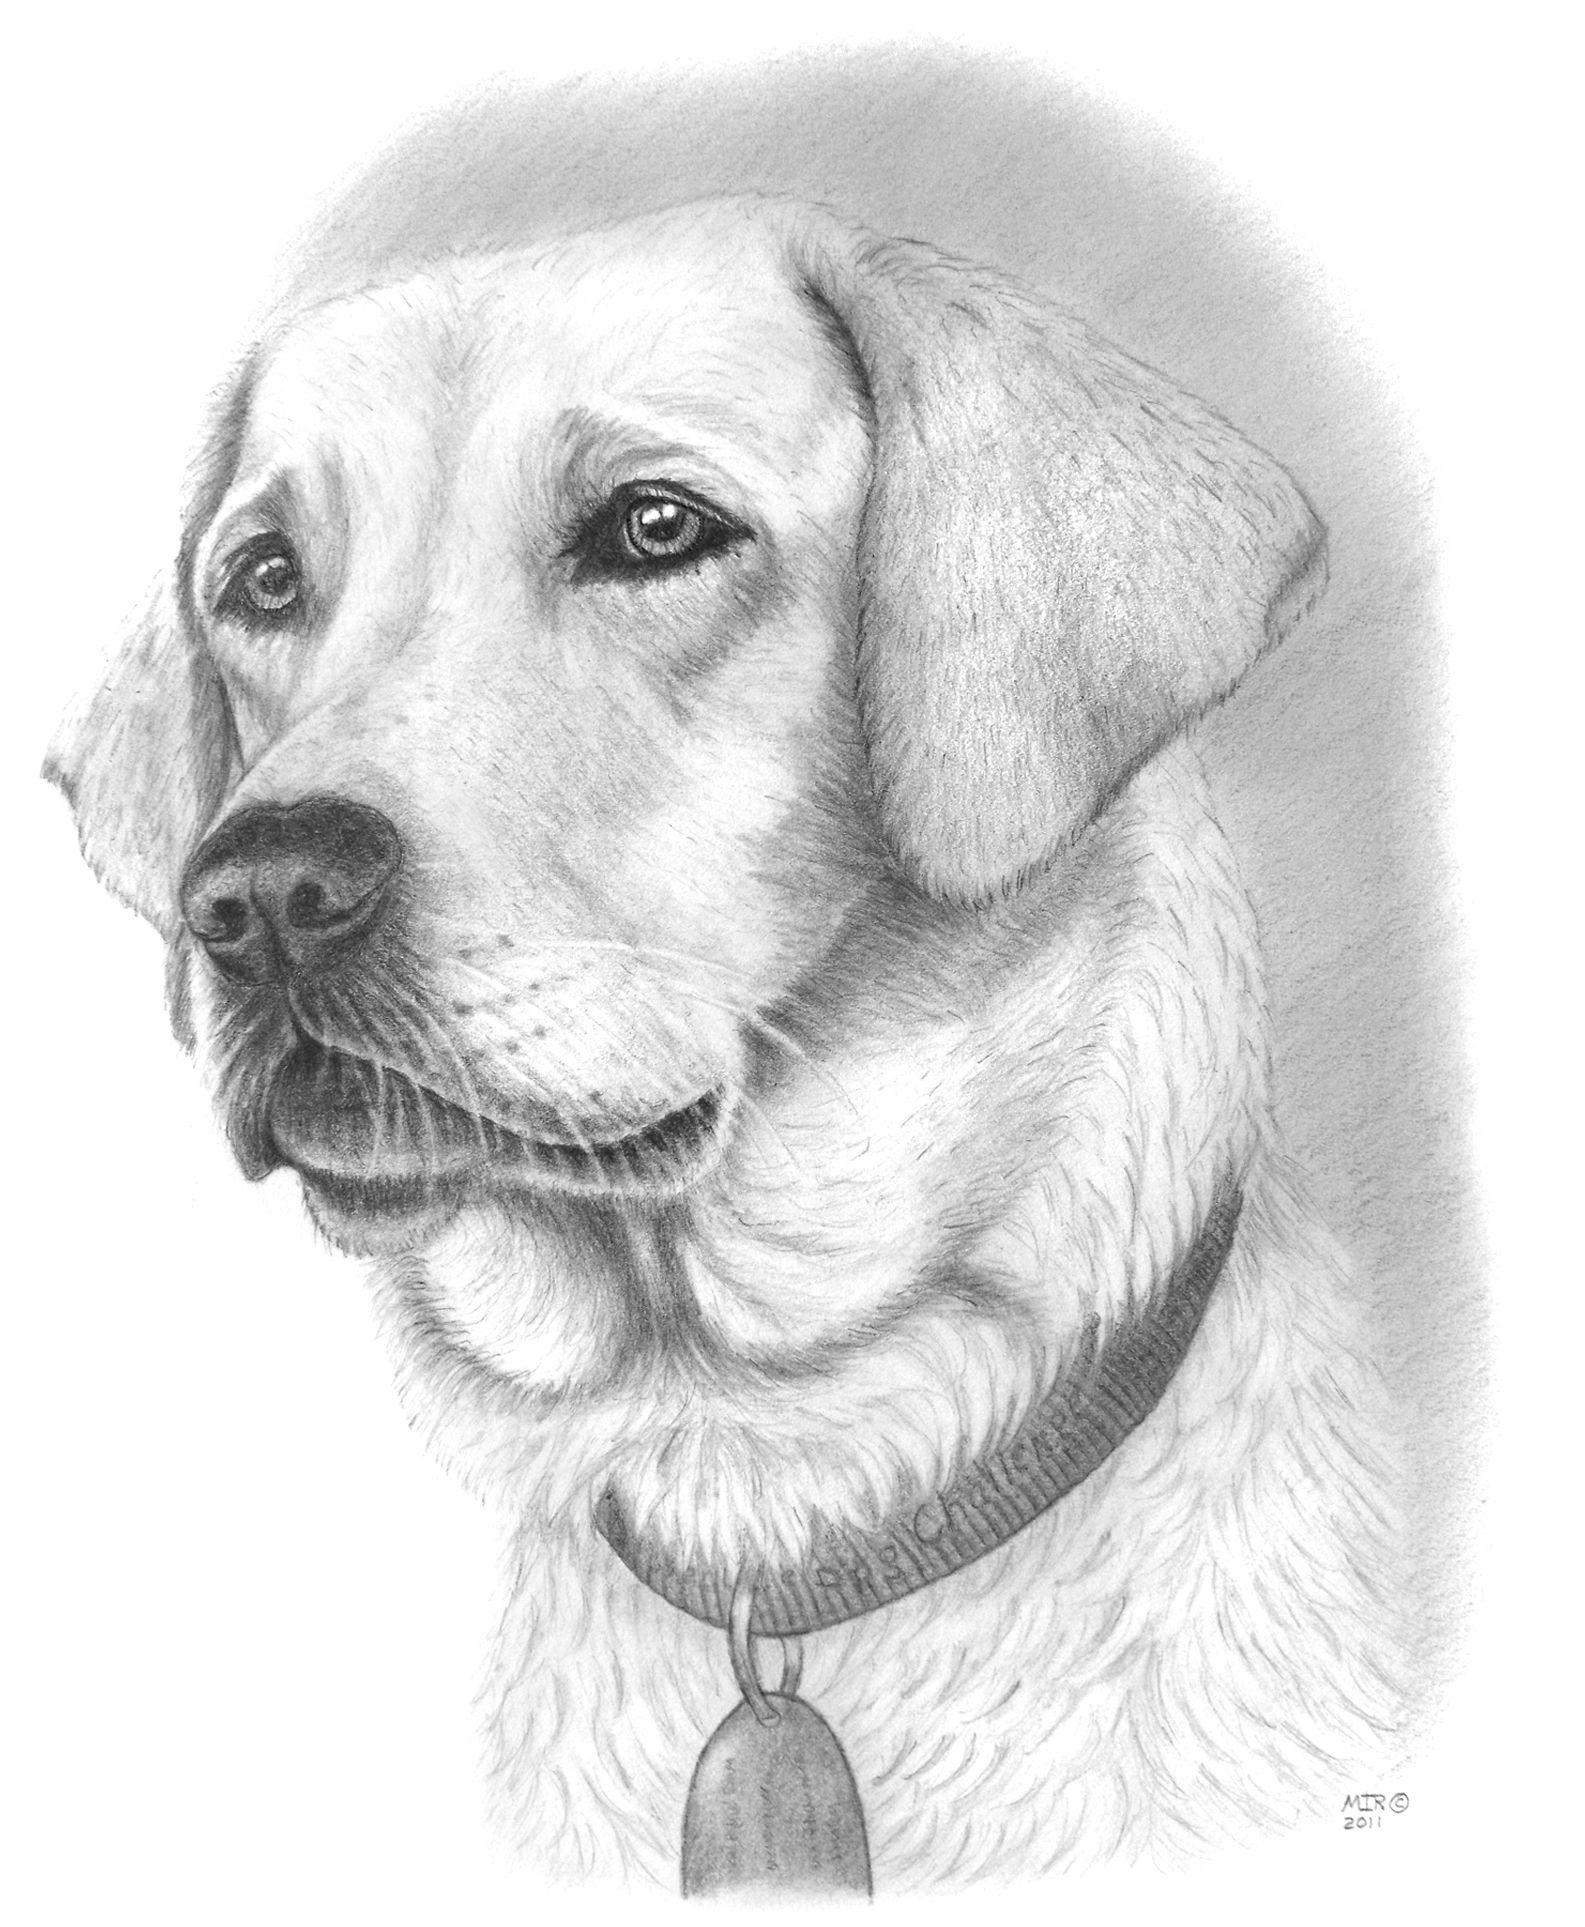 Pretty dog drawing dog cat etc in 2019 dog pencil drawing dog